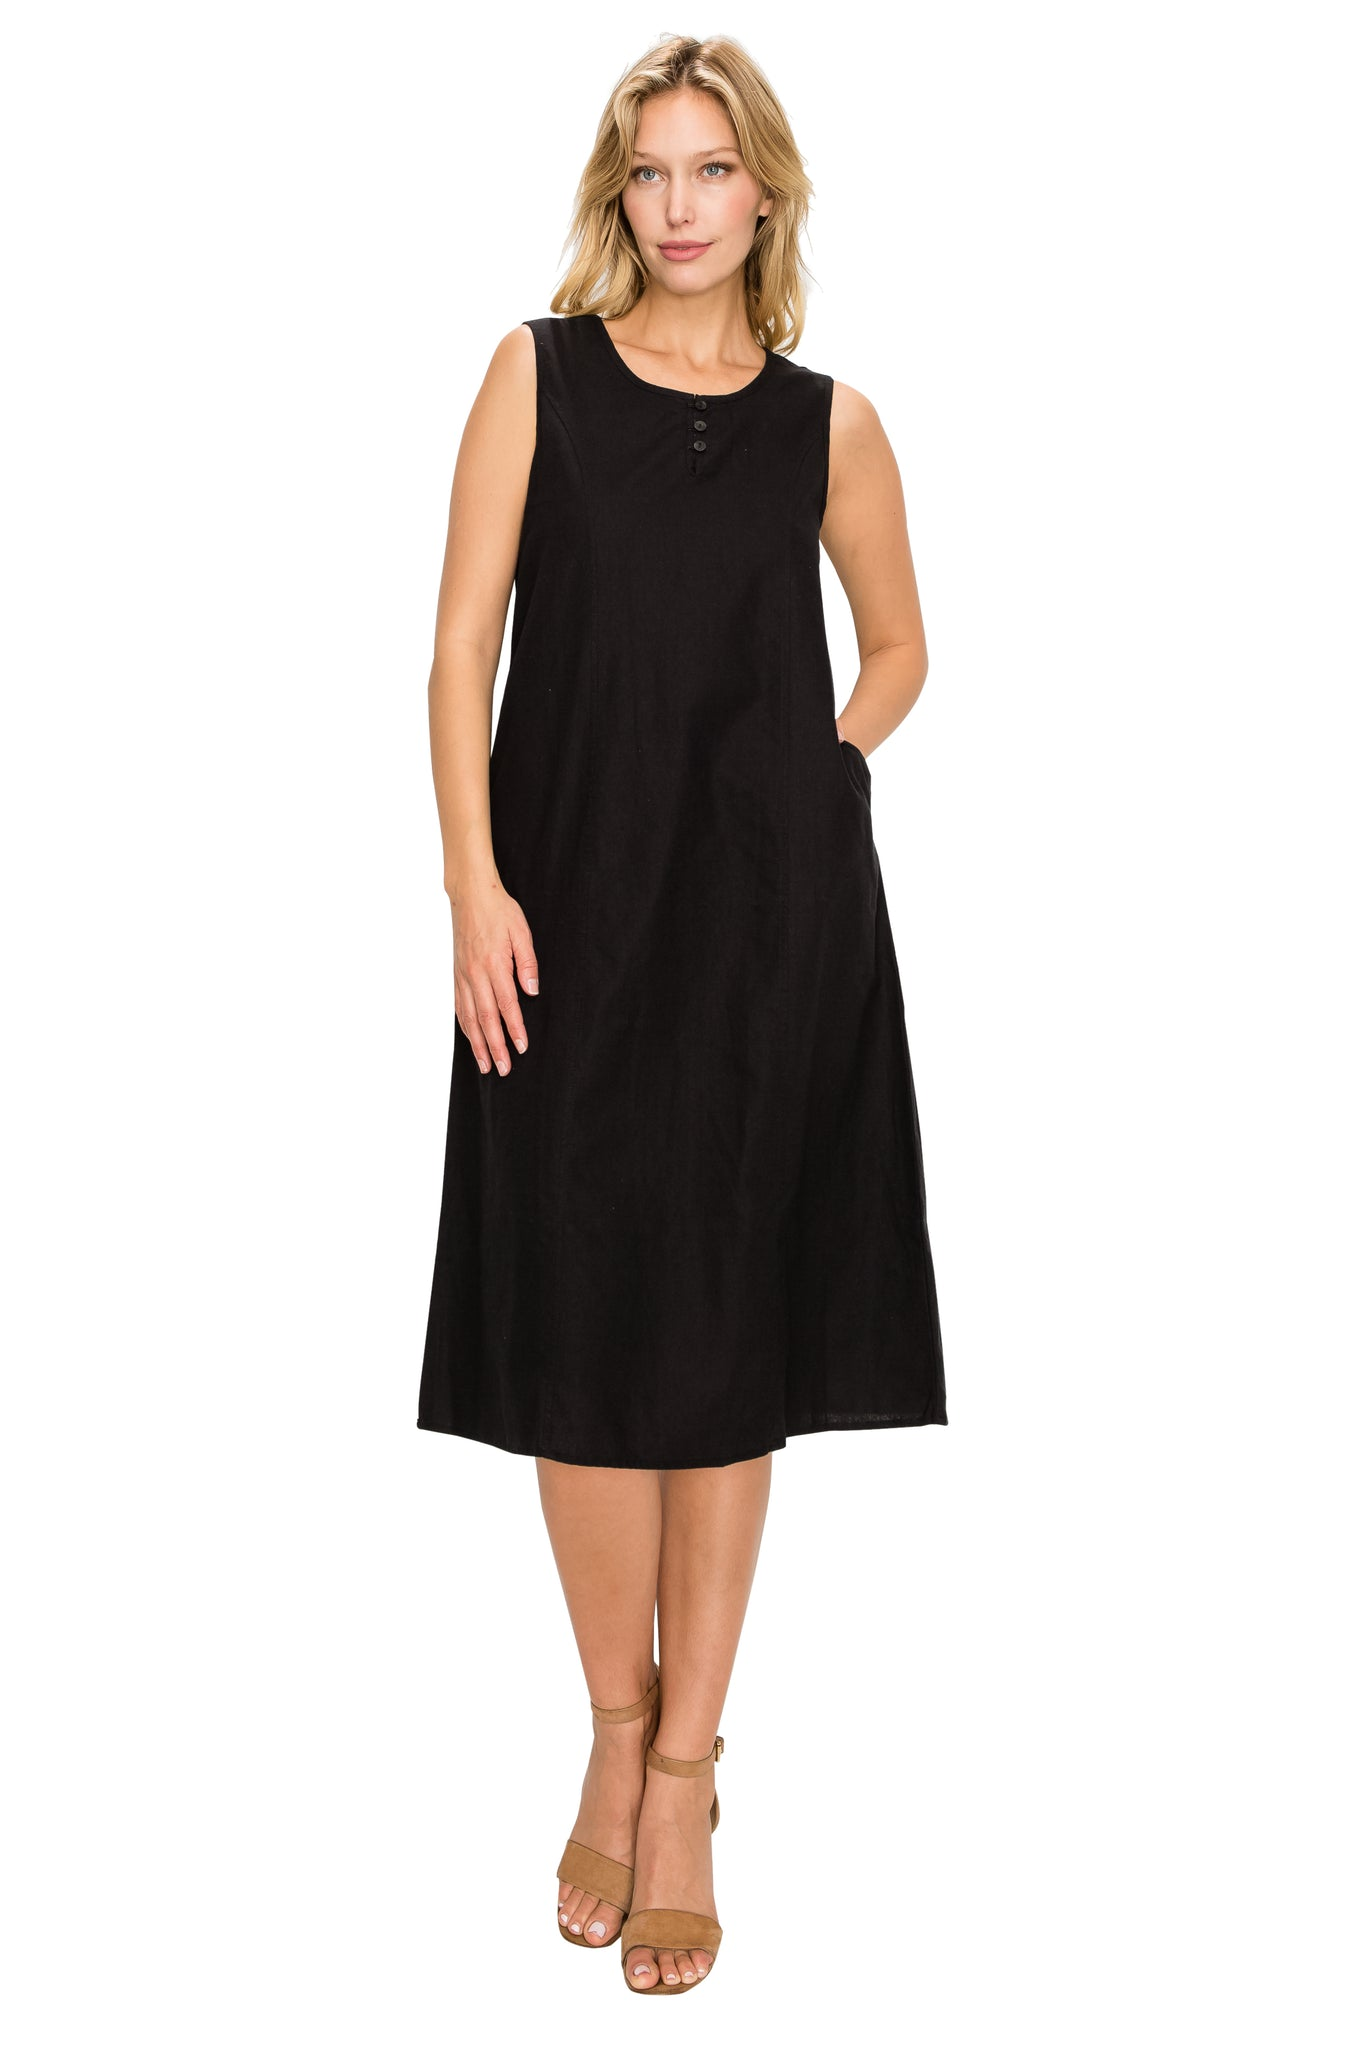 Black Linen Midi-Dress - Poplooks